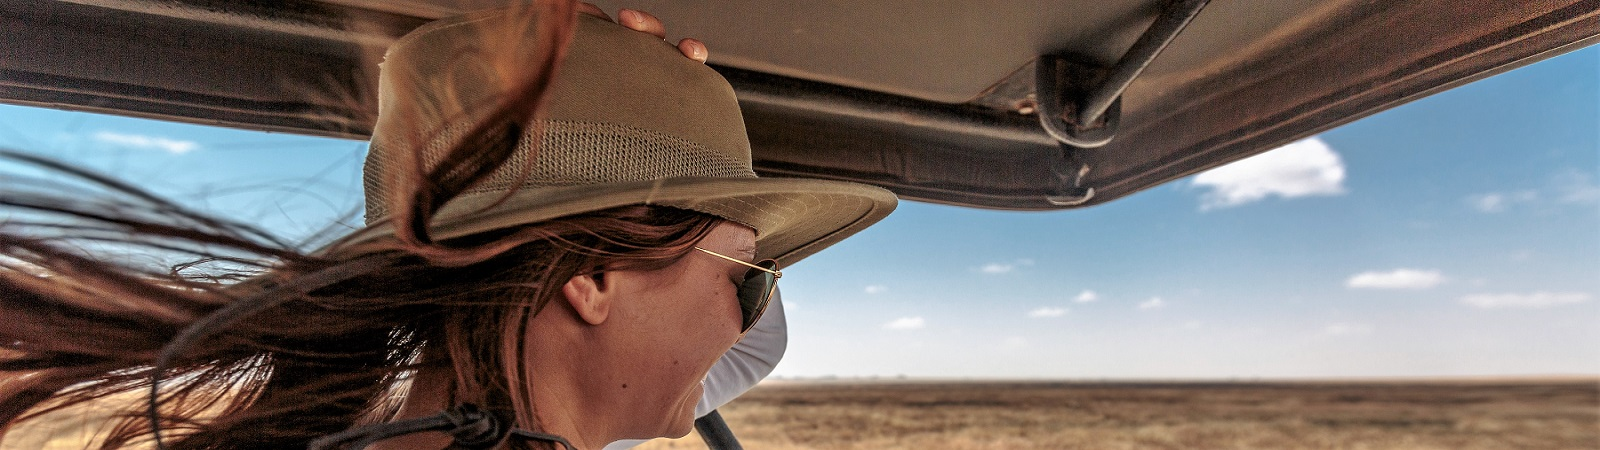 #WomenGoSolo: Be Inspired & Join Our Solo Female Travel Initiative